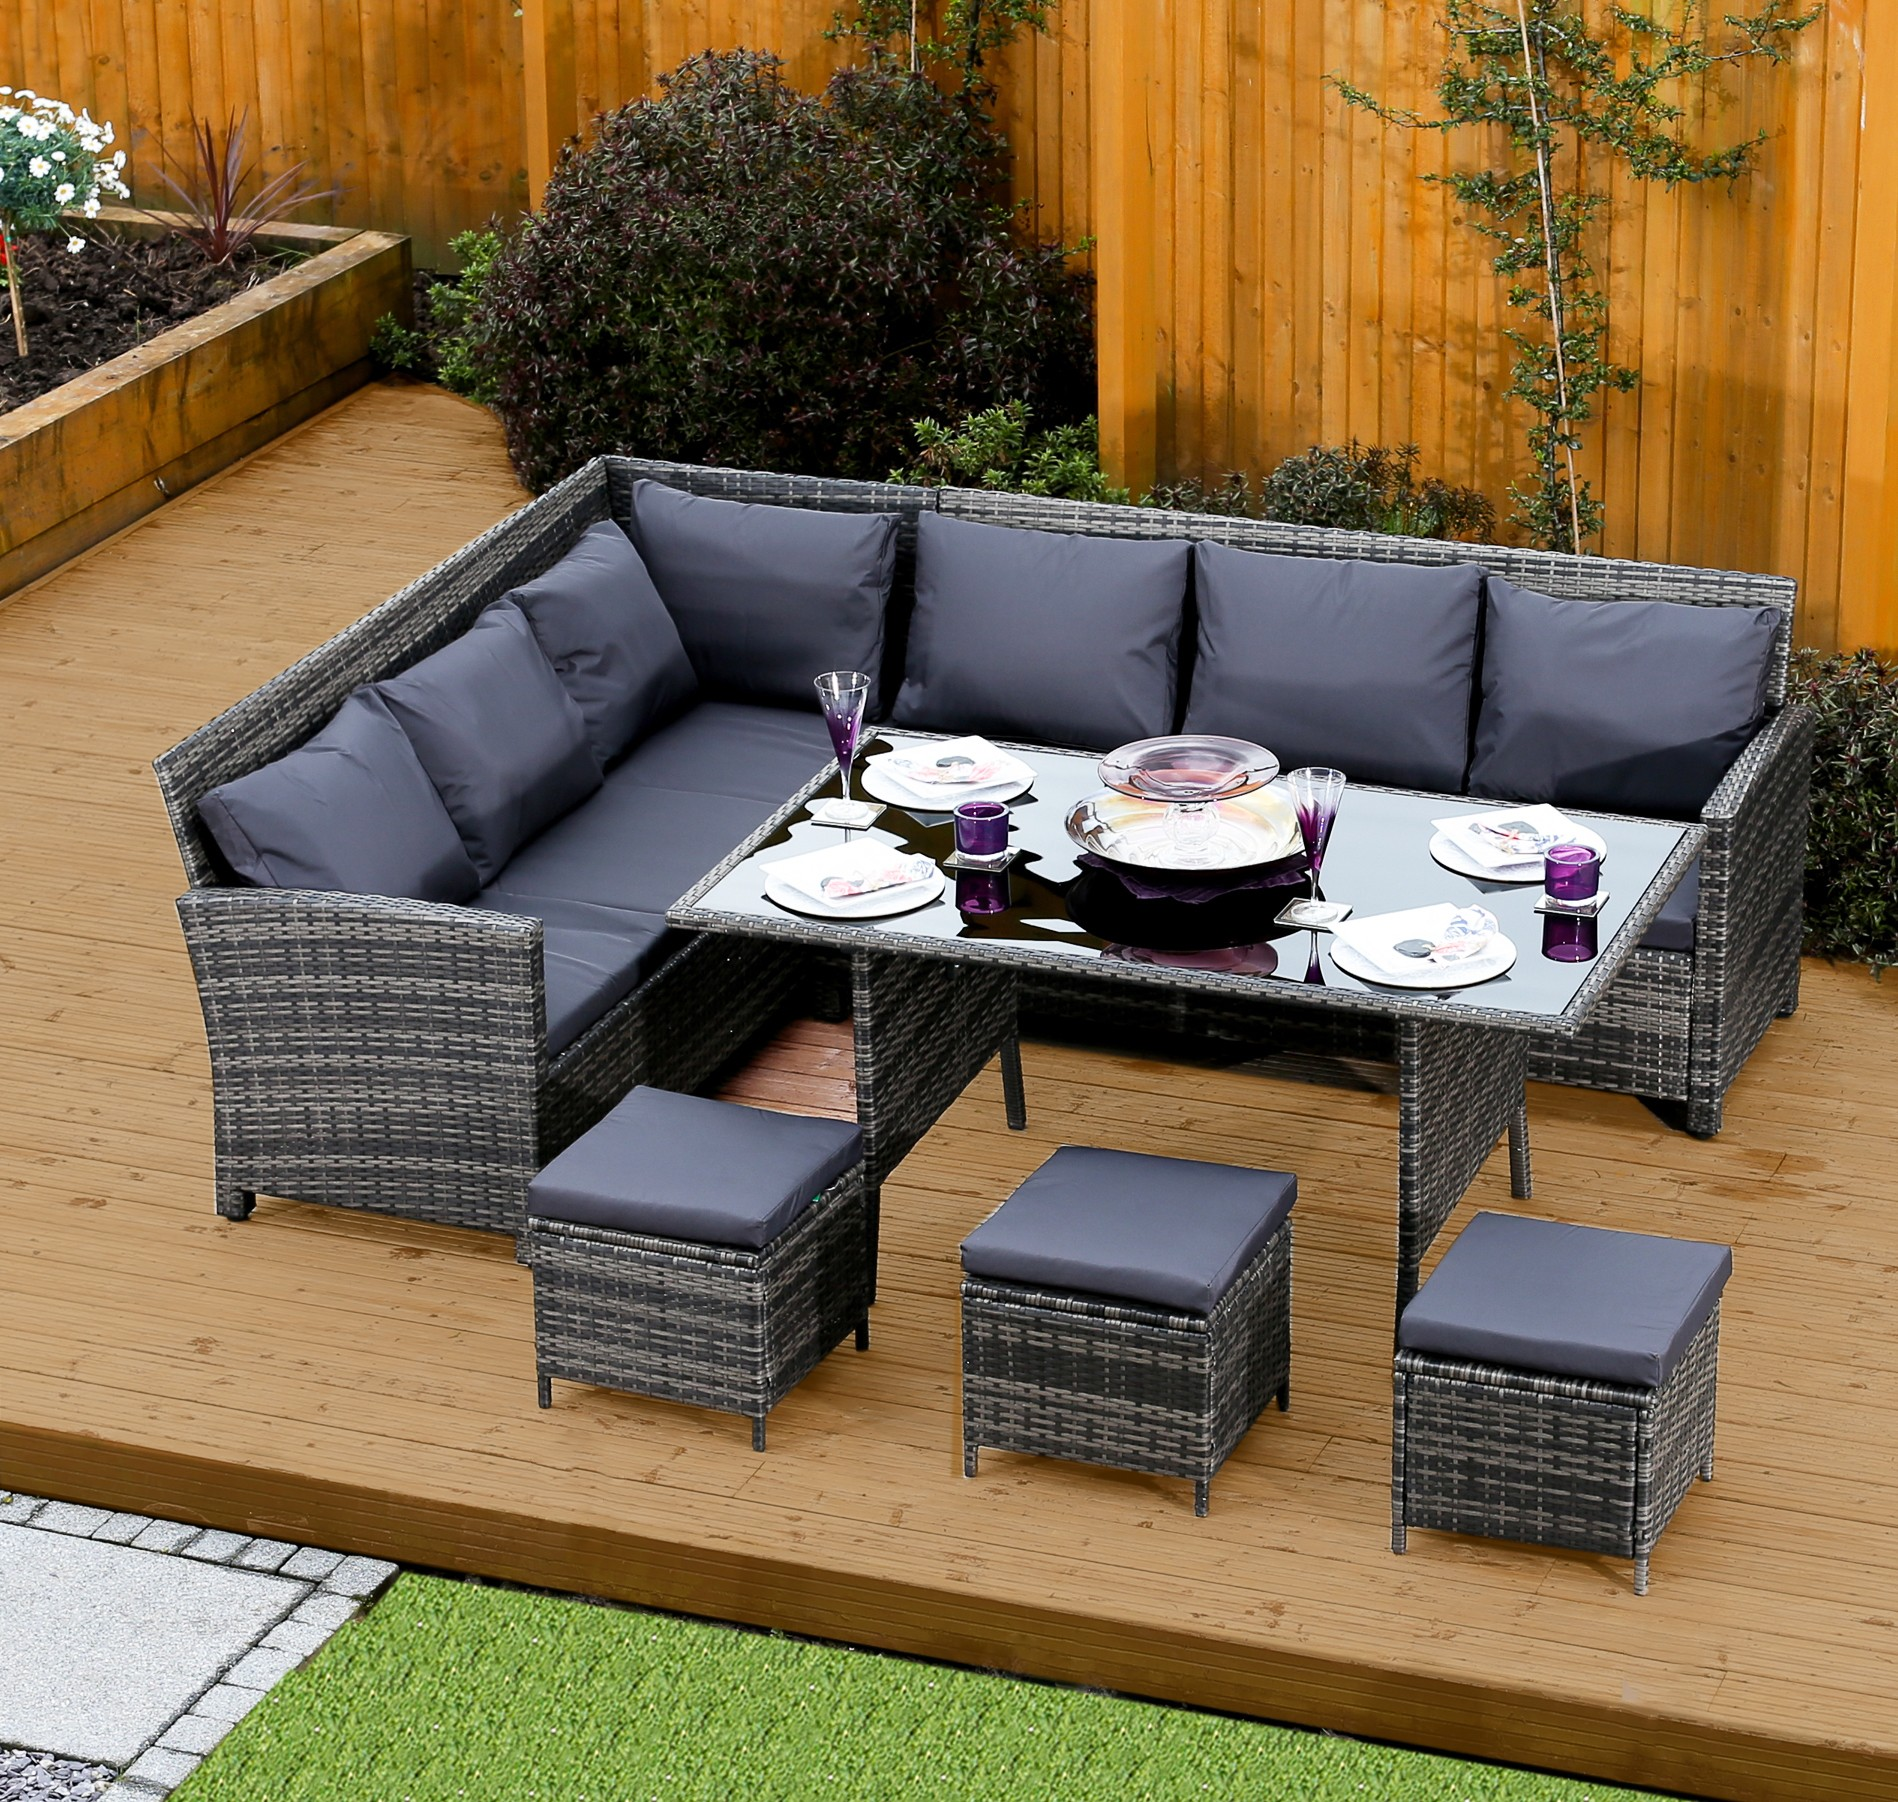 9 Seater Rattan Corner Garden Sofa Dining Table Set In Dark Mixed Grey With Dark Cushions